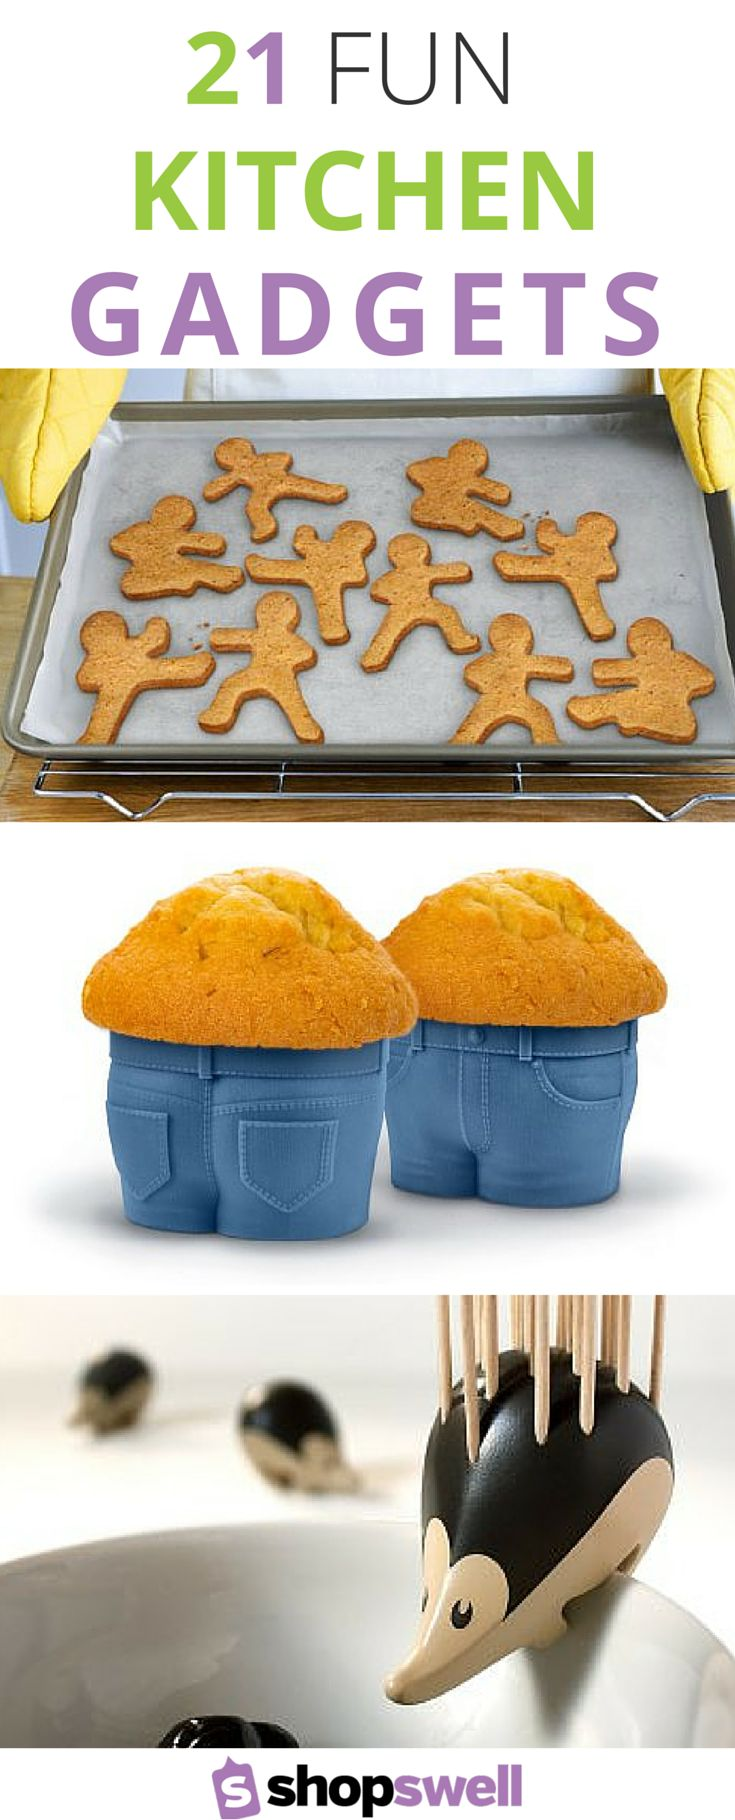 20 Kitchen Gadgets That Will Make You Smile (Kitchen Gadgets) | Kitchen  Gadgets | Pinterest | Kitchen Gadgets, Kitchens And Stuffing